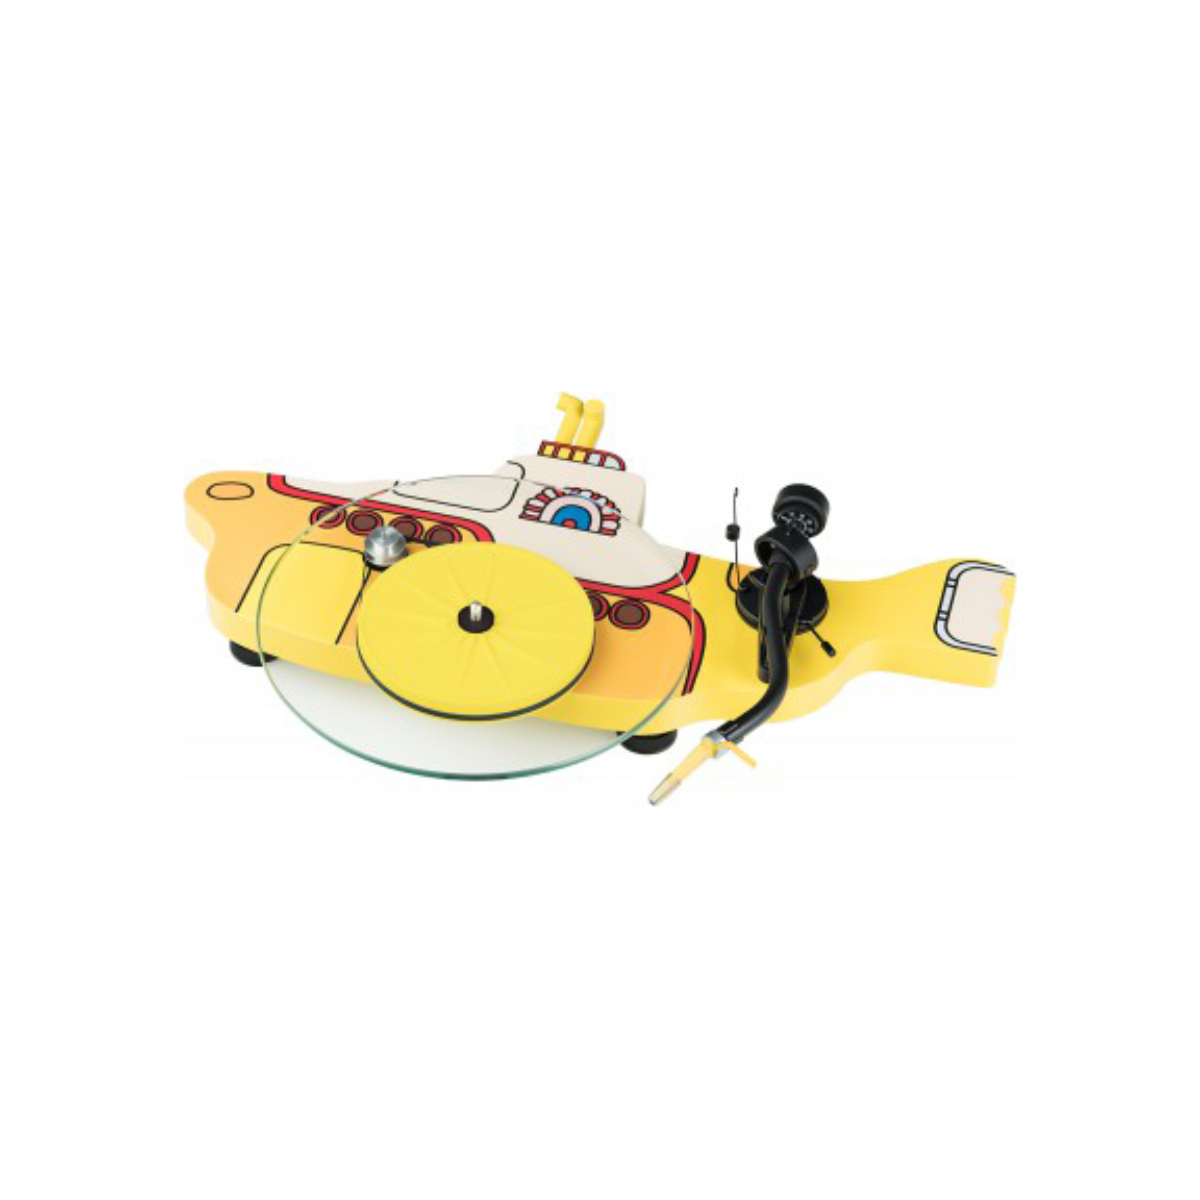 Pro-Ject Yellow Submarine Turntable